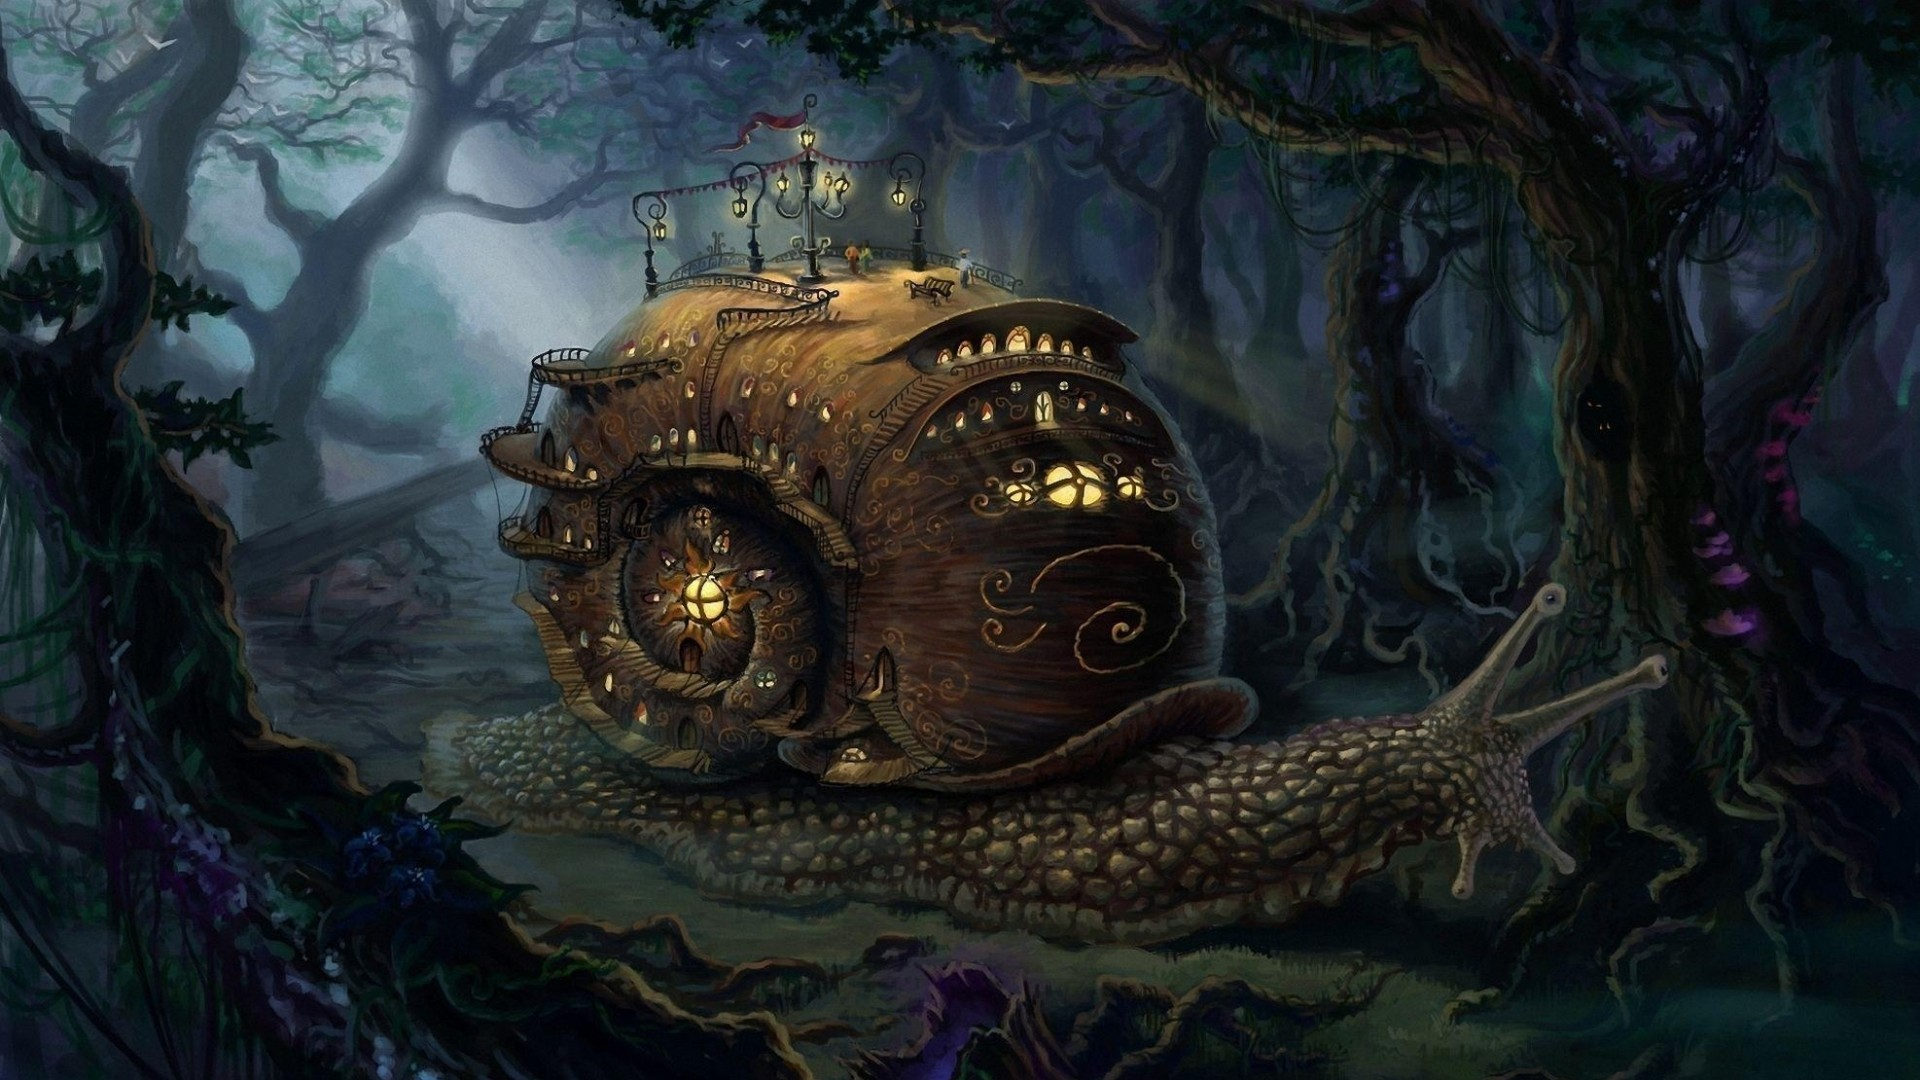 1920x1080 Fantasy Forest Hd High Quality Wallpapers HD Wallpapers  px 1.05  MB | Wallpapers | Pinterest | Fantasy art landscapes, Steampunk city and  Steampunk